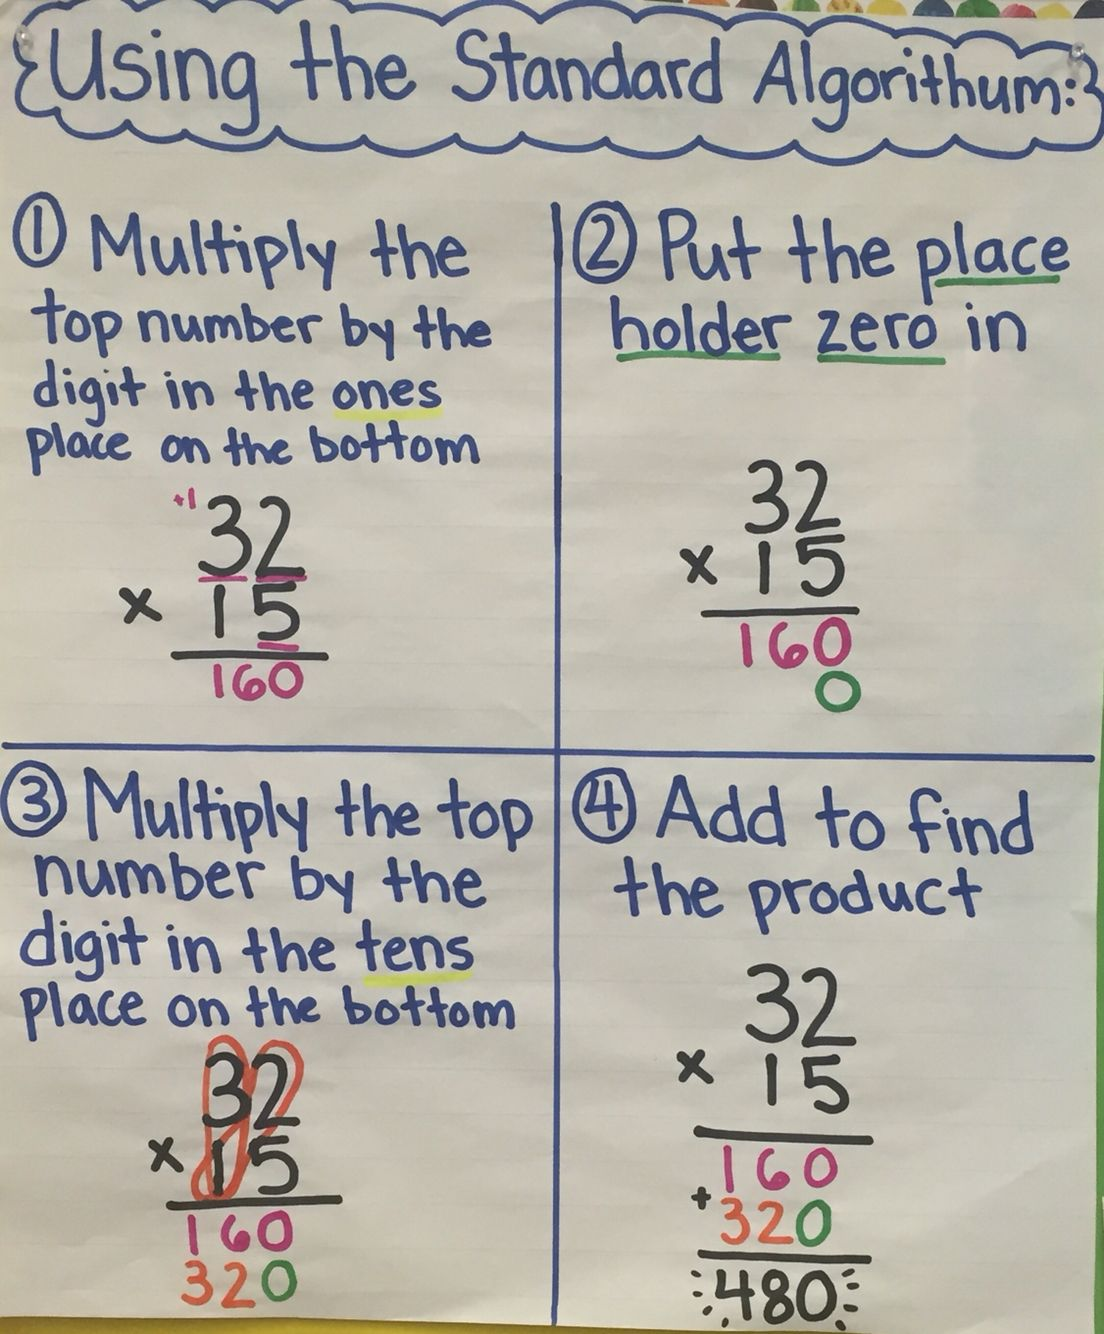 Step By Step Standard Algorithm Math Strategies Math Charts Math Lesson Plans Standard algorithm addition and